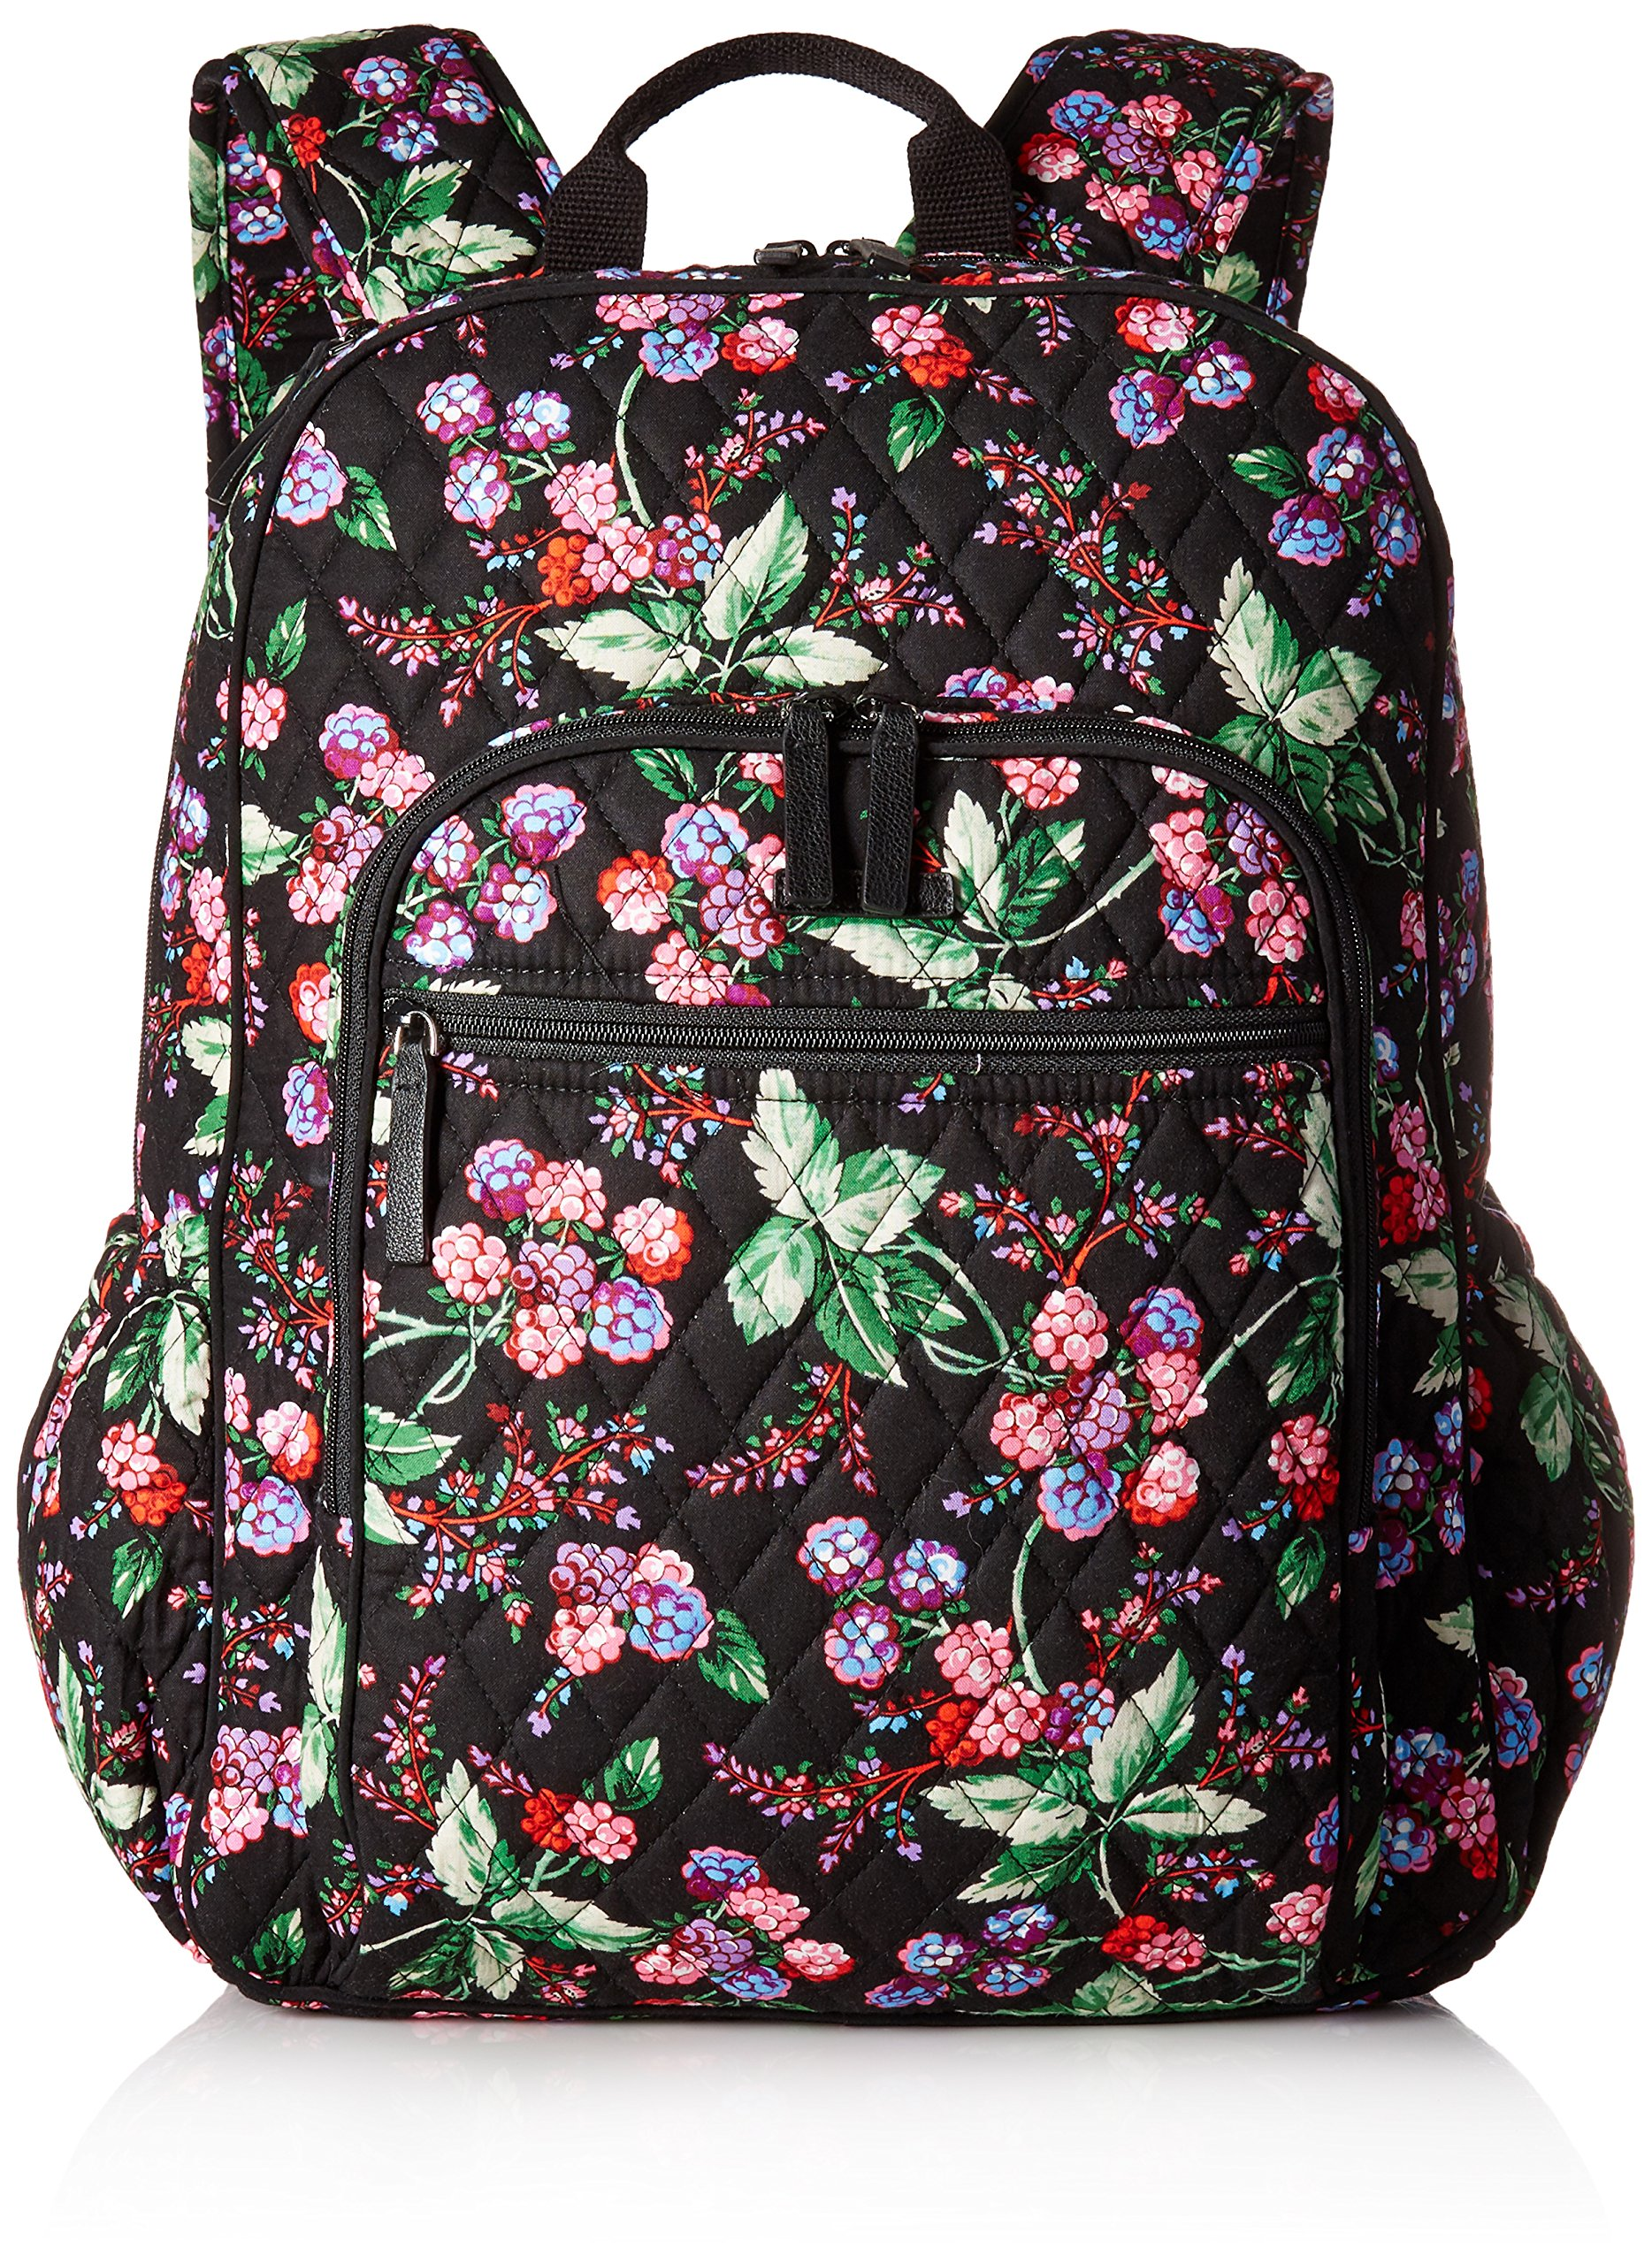 Vera Bradley Women's Campus Tech Backpack-Signature, Winter Berry by Vera Bradley (Image #1)